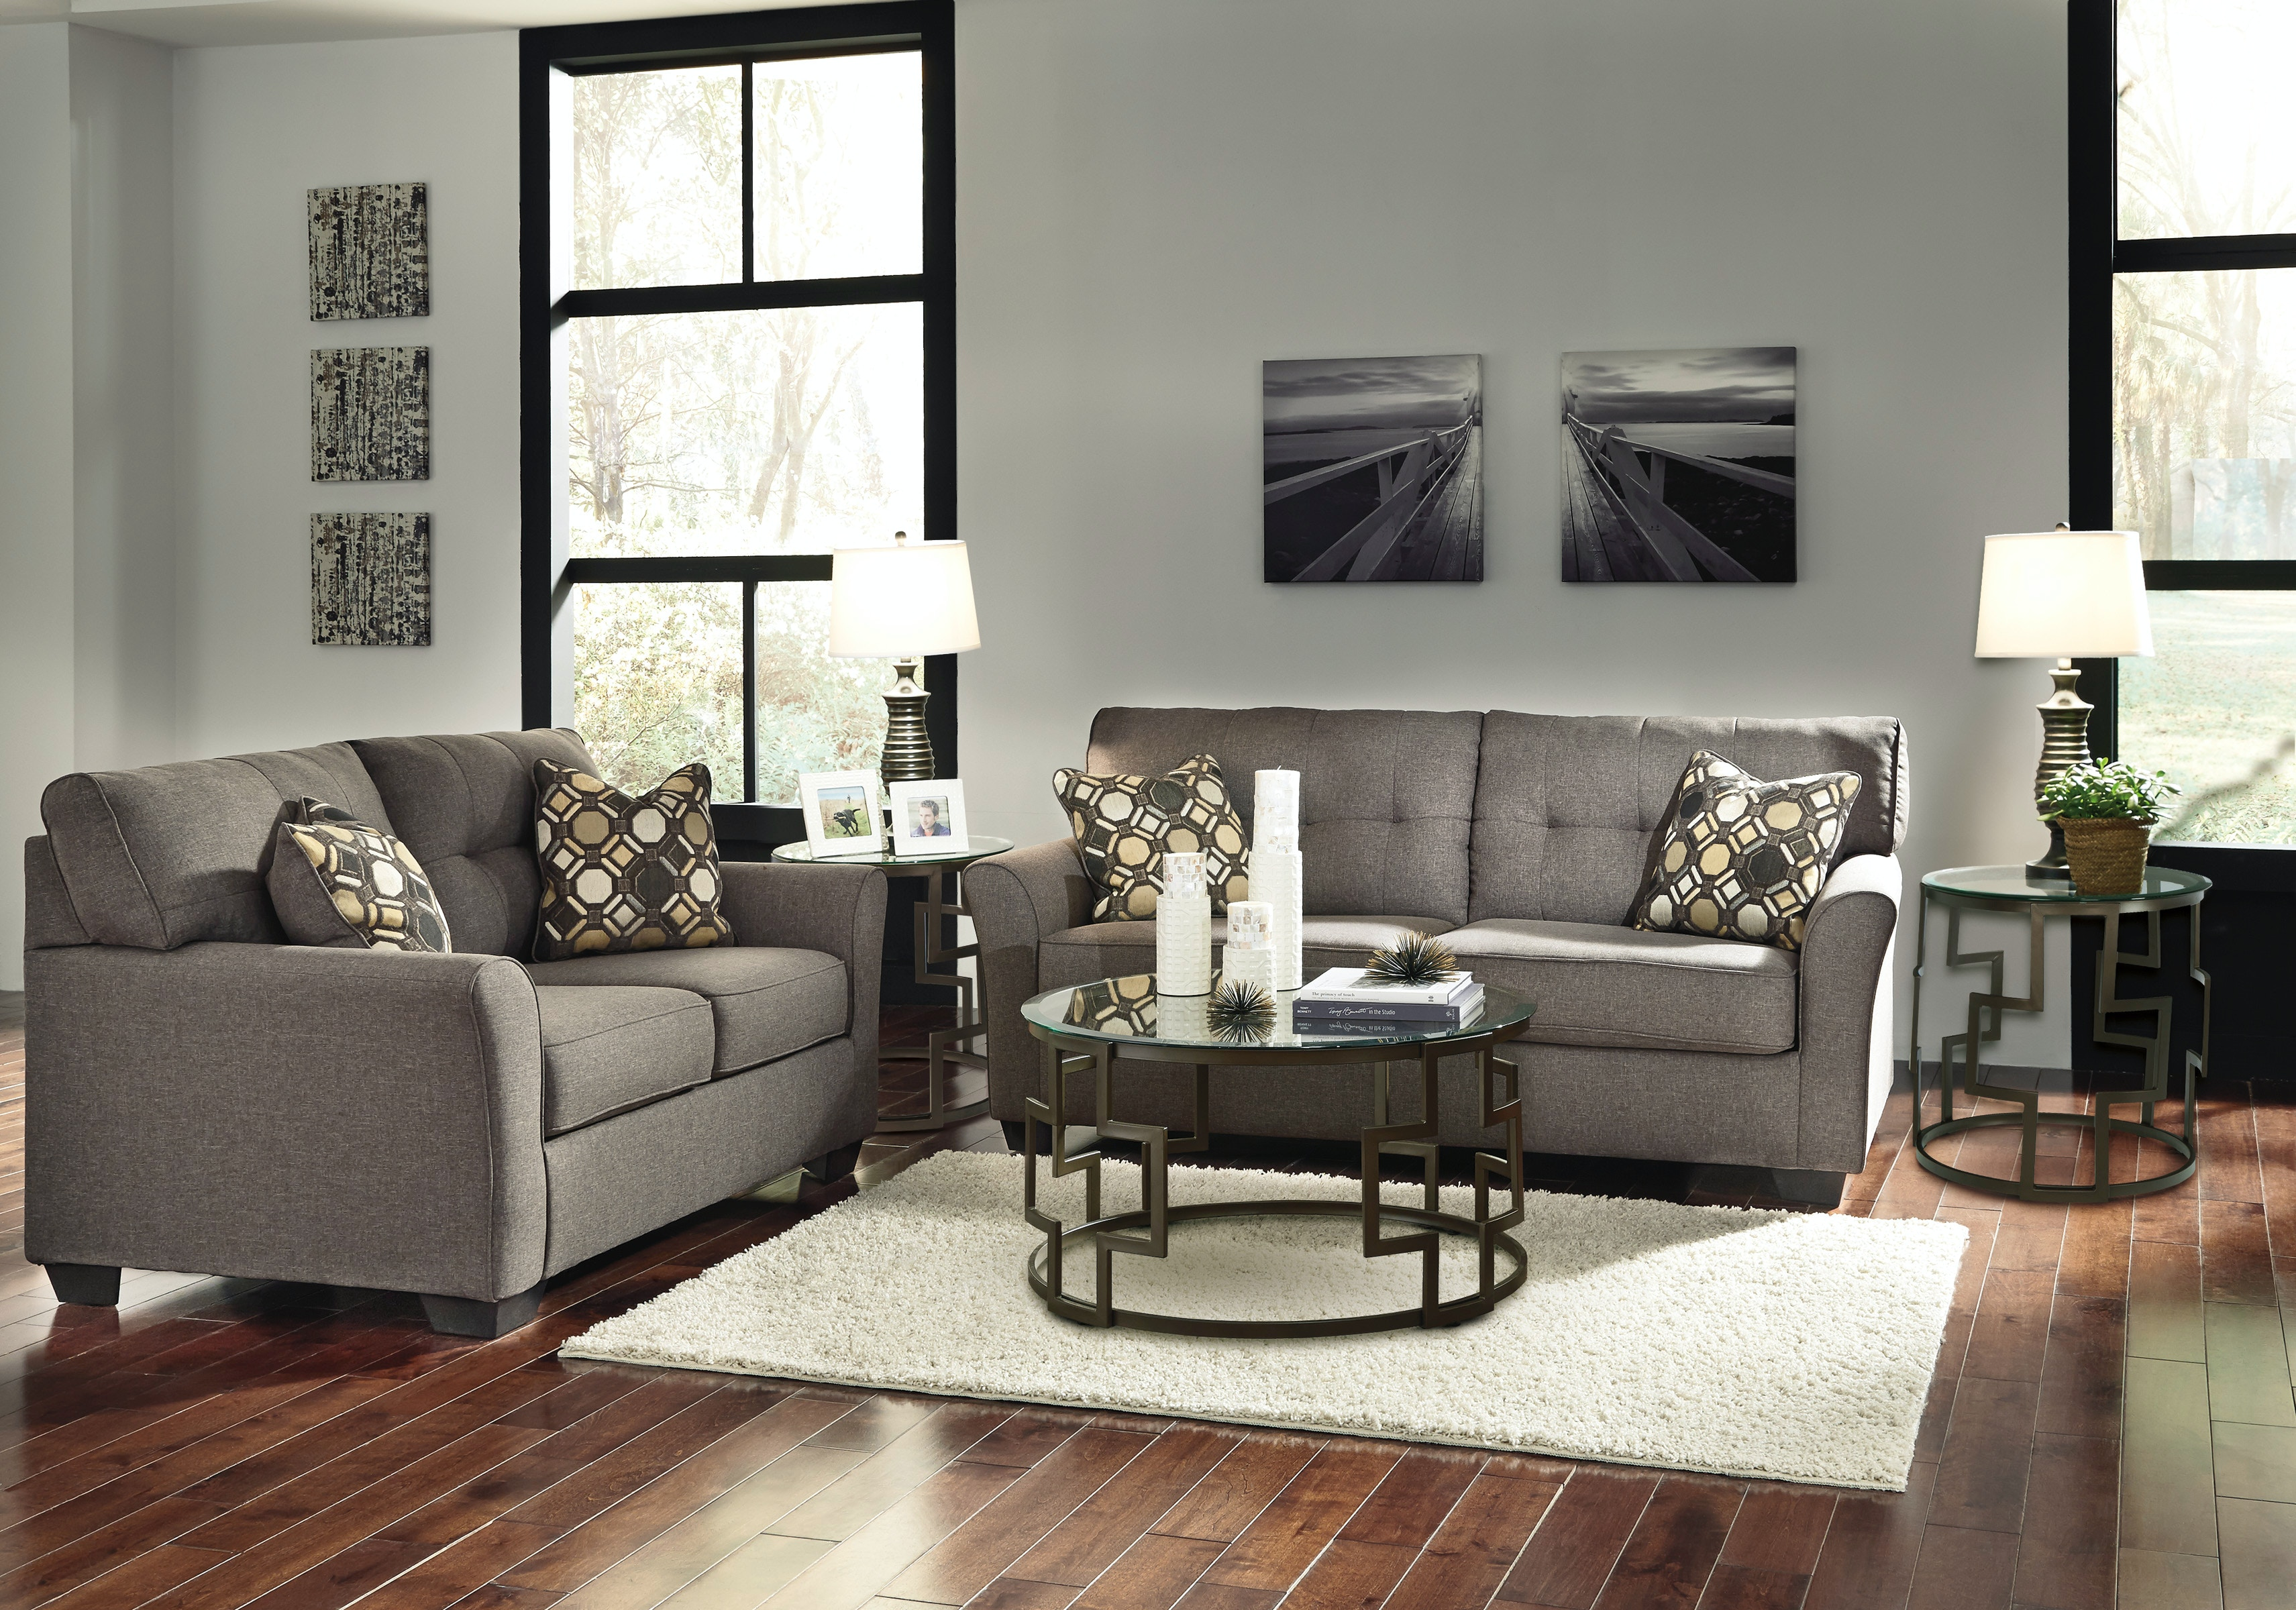 Signature Design By Ashley 5pc Tibbee Tailored Living Room Group Includes  Sofa, Loveseat, 3pc